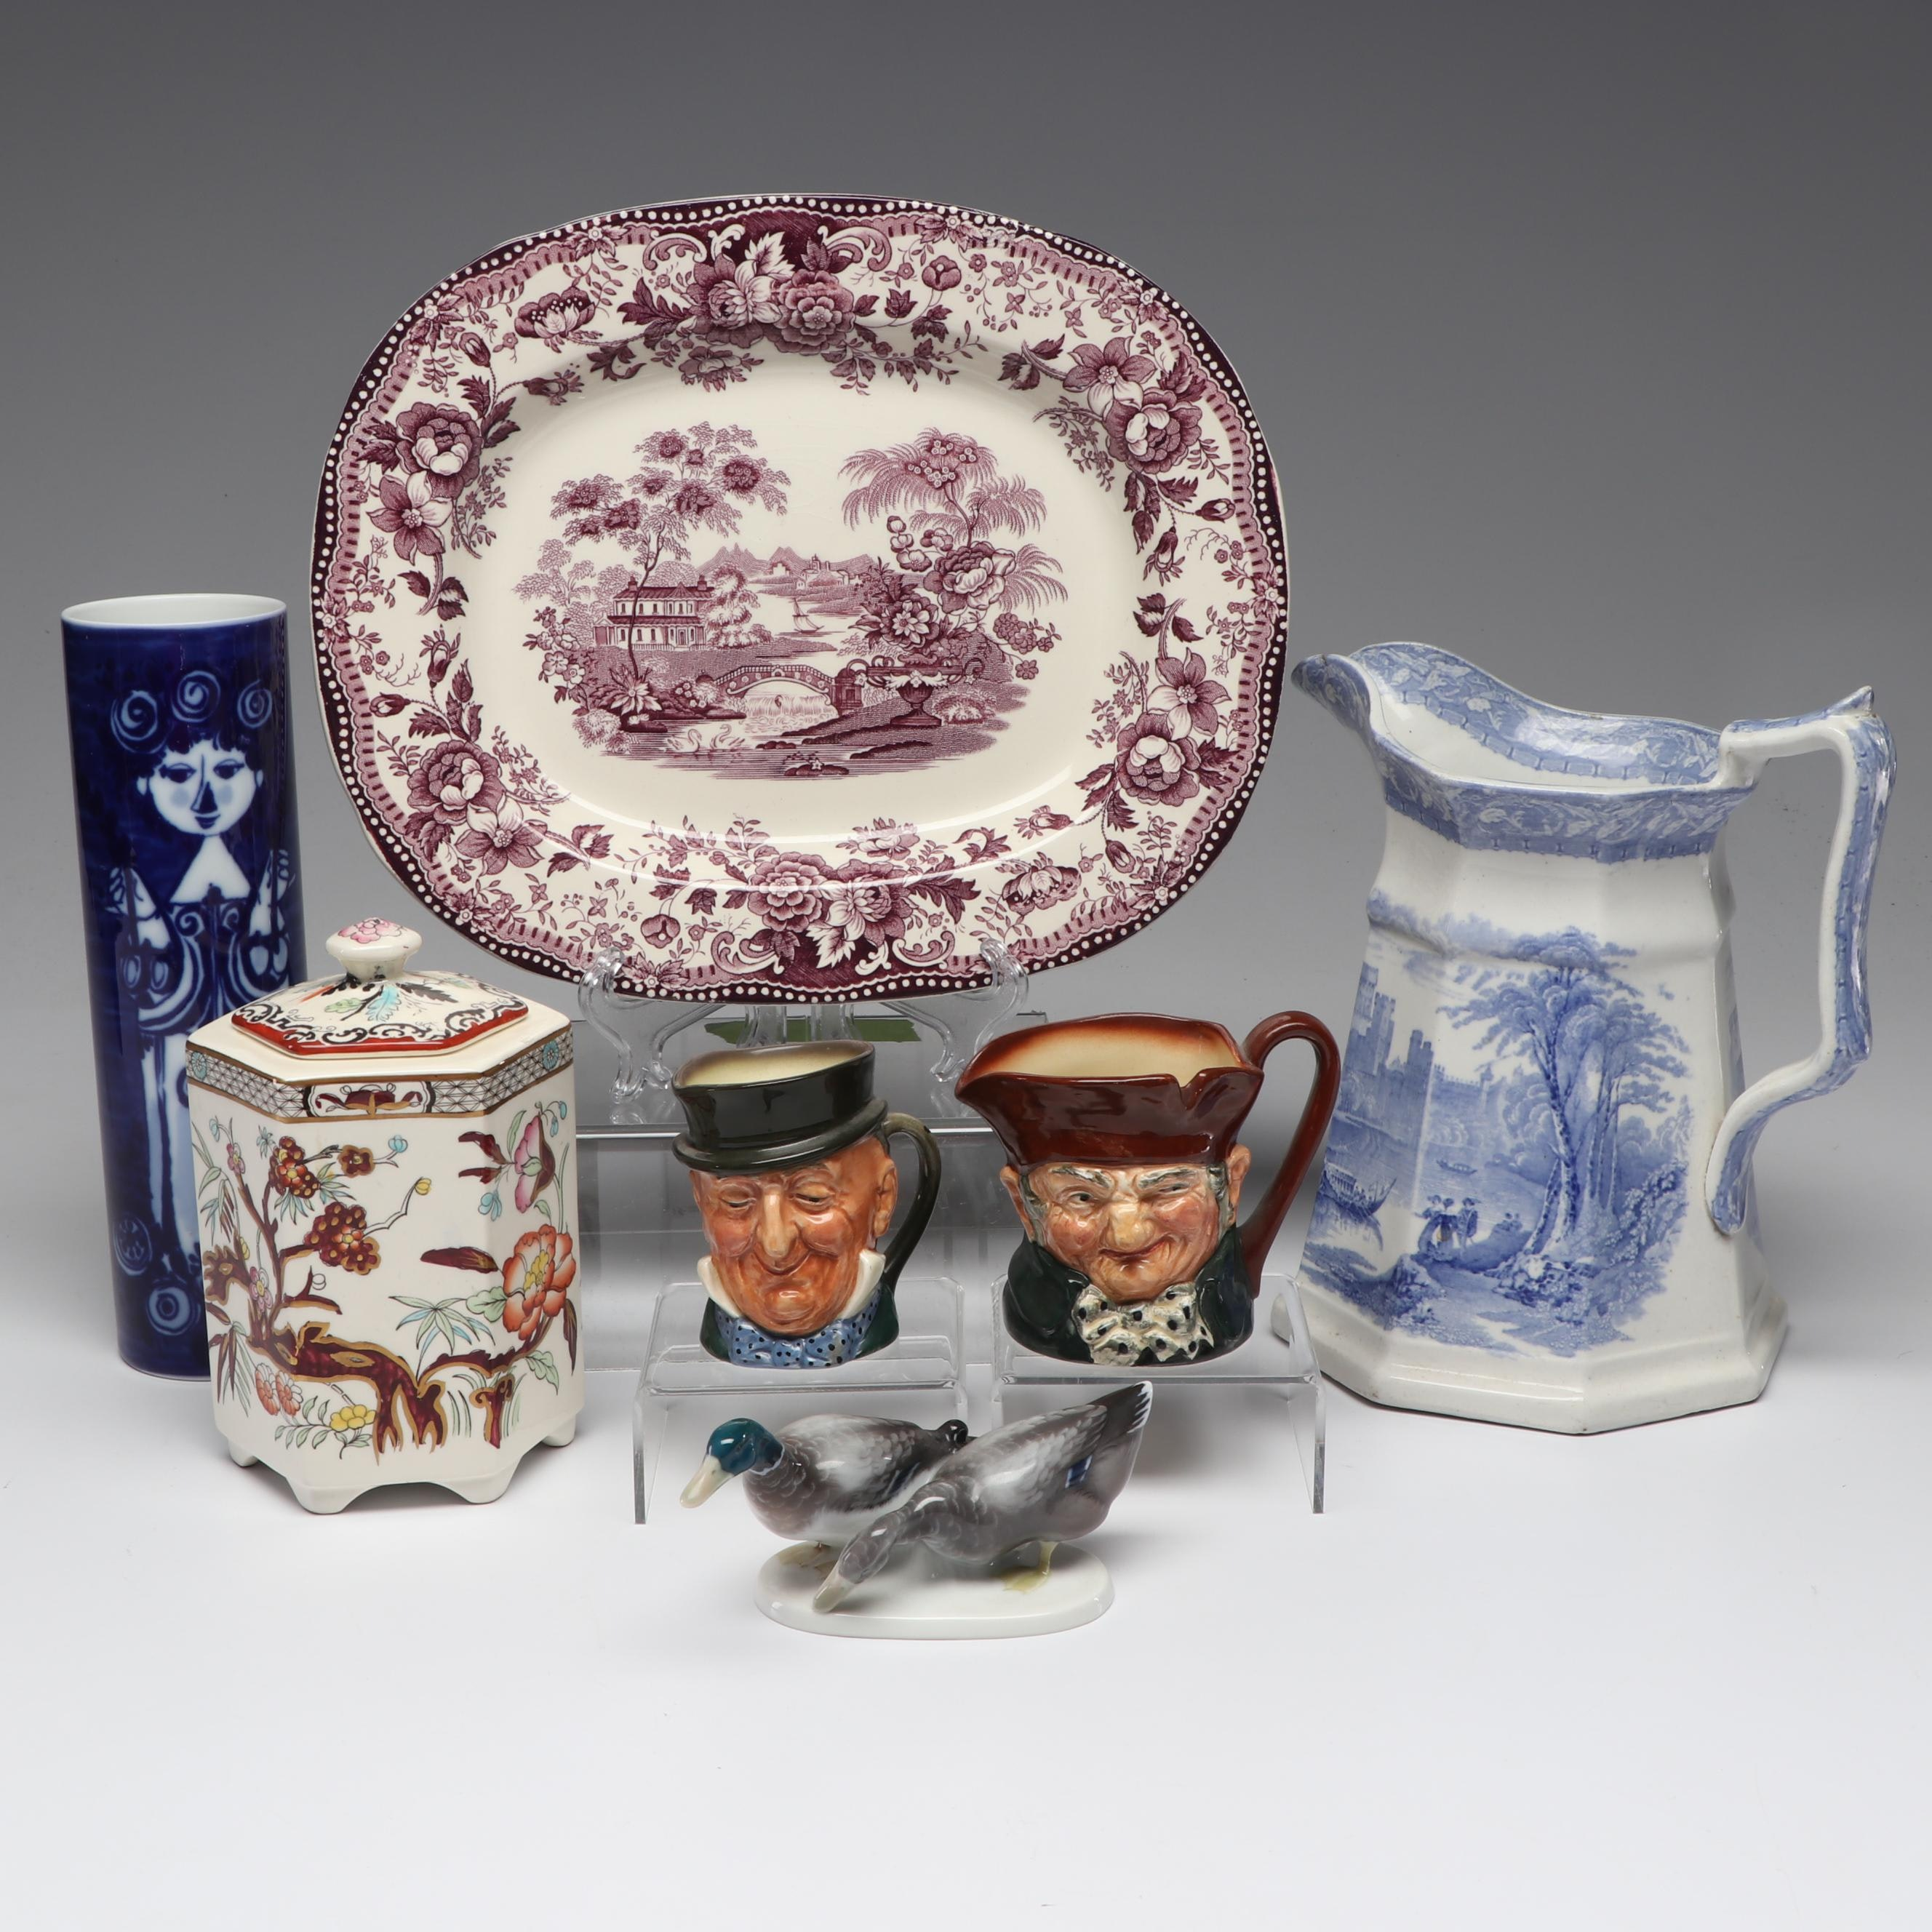 English and German Ceramic Decor including Clarice Cliff and Rosenthal